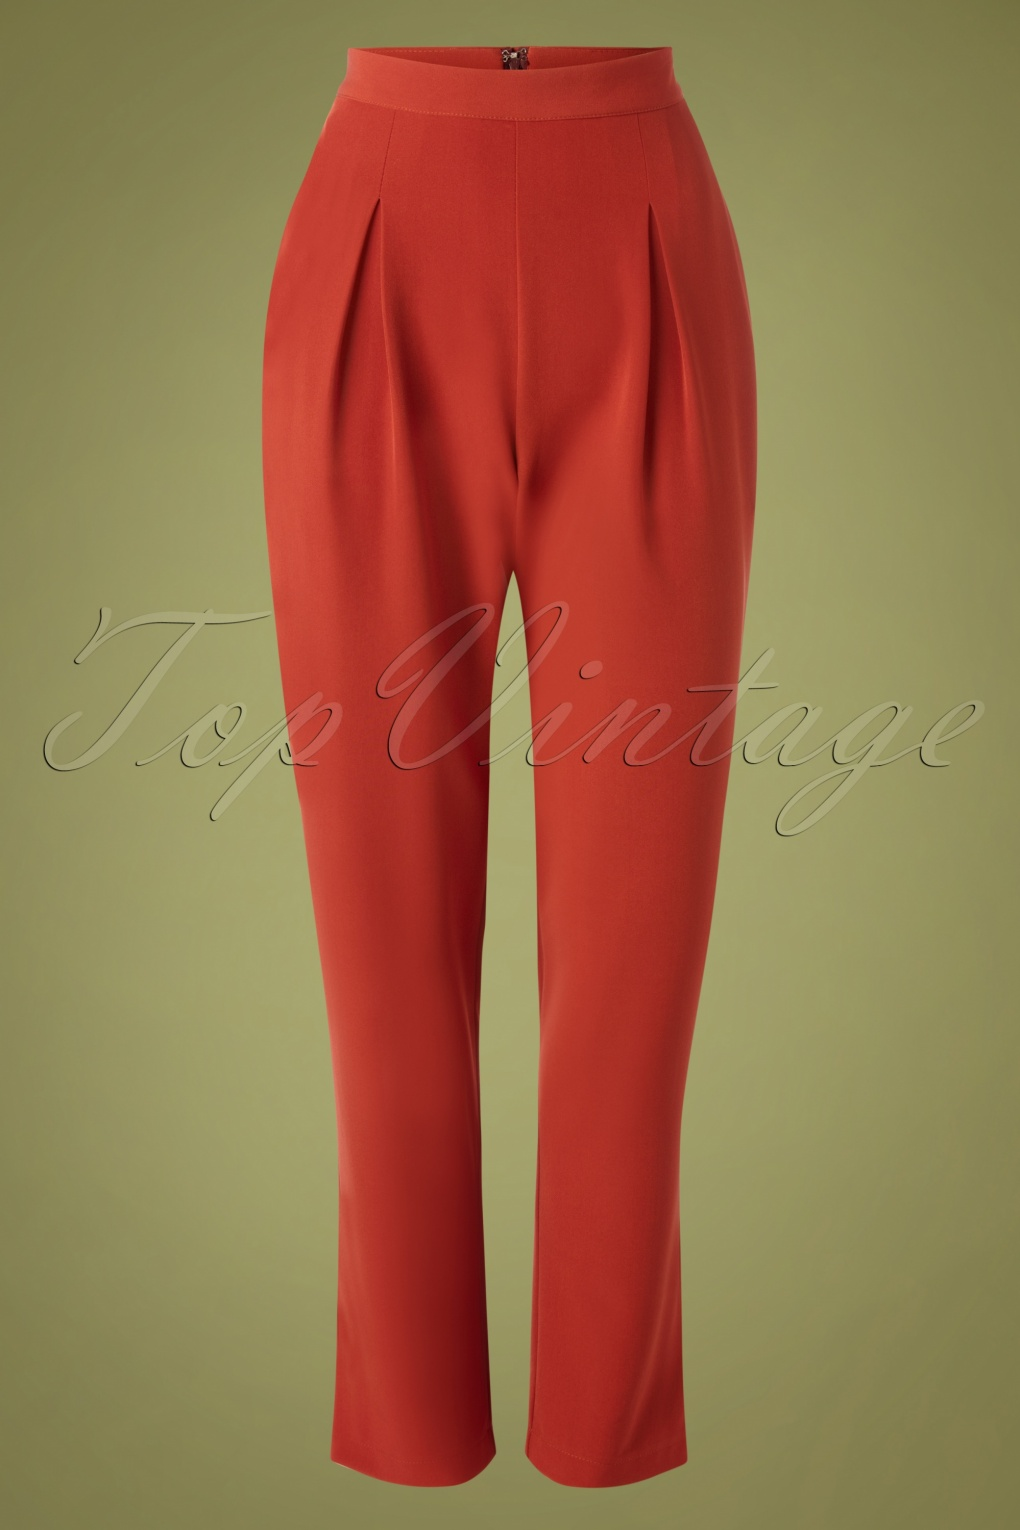 Vintage High Waisted Trousers, Sailor Pants, Jeans 50s Wear Me Everywhere Trousers in Brick Orange £35.93 AT vintagedancer.com